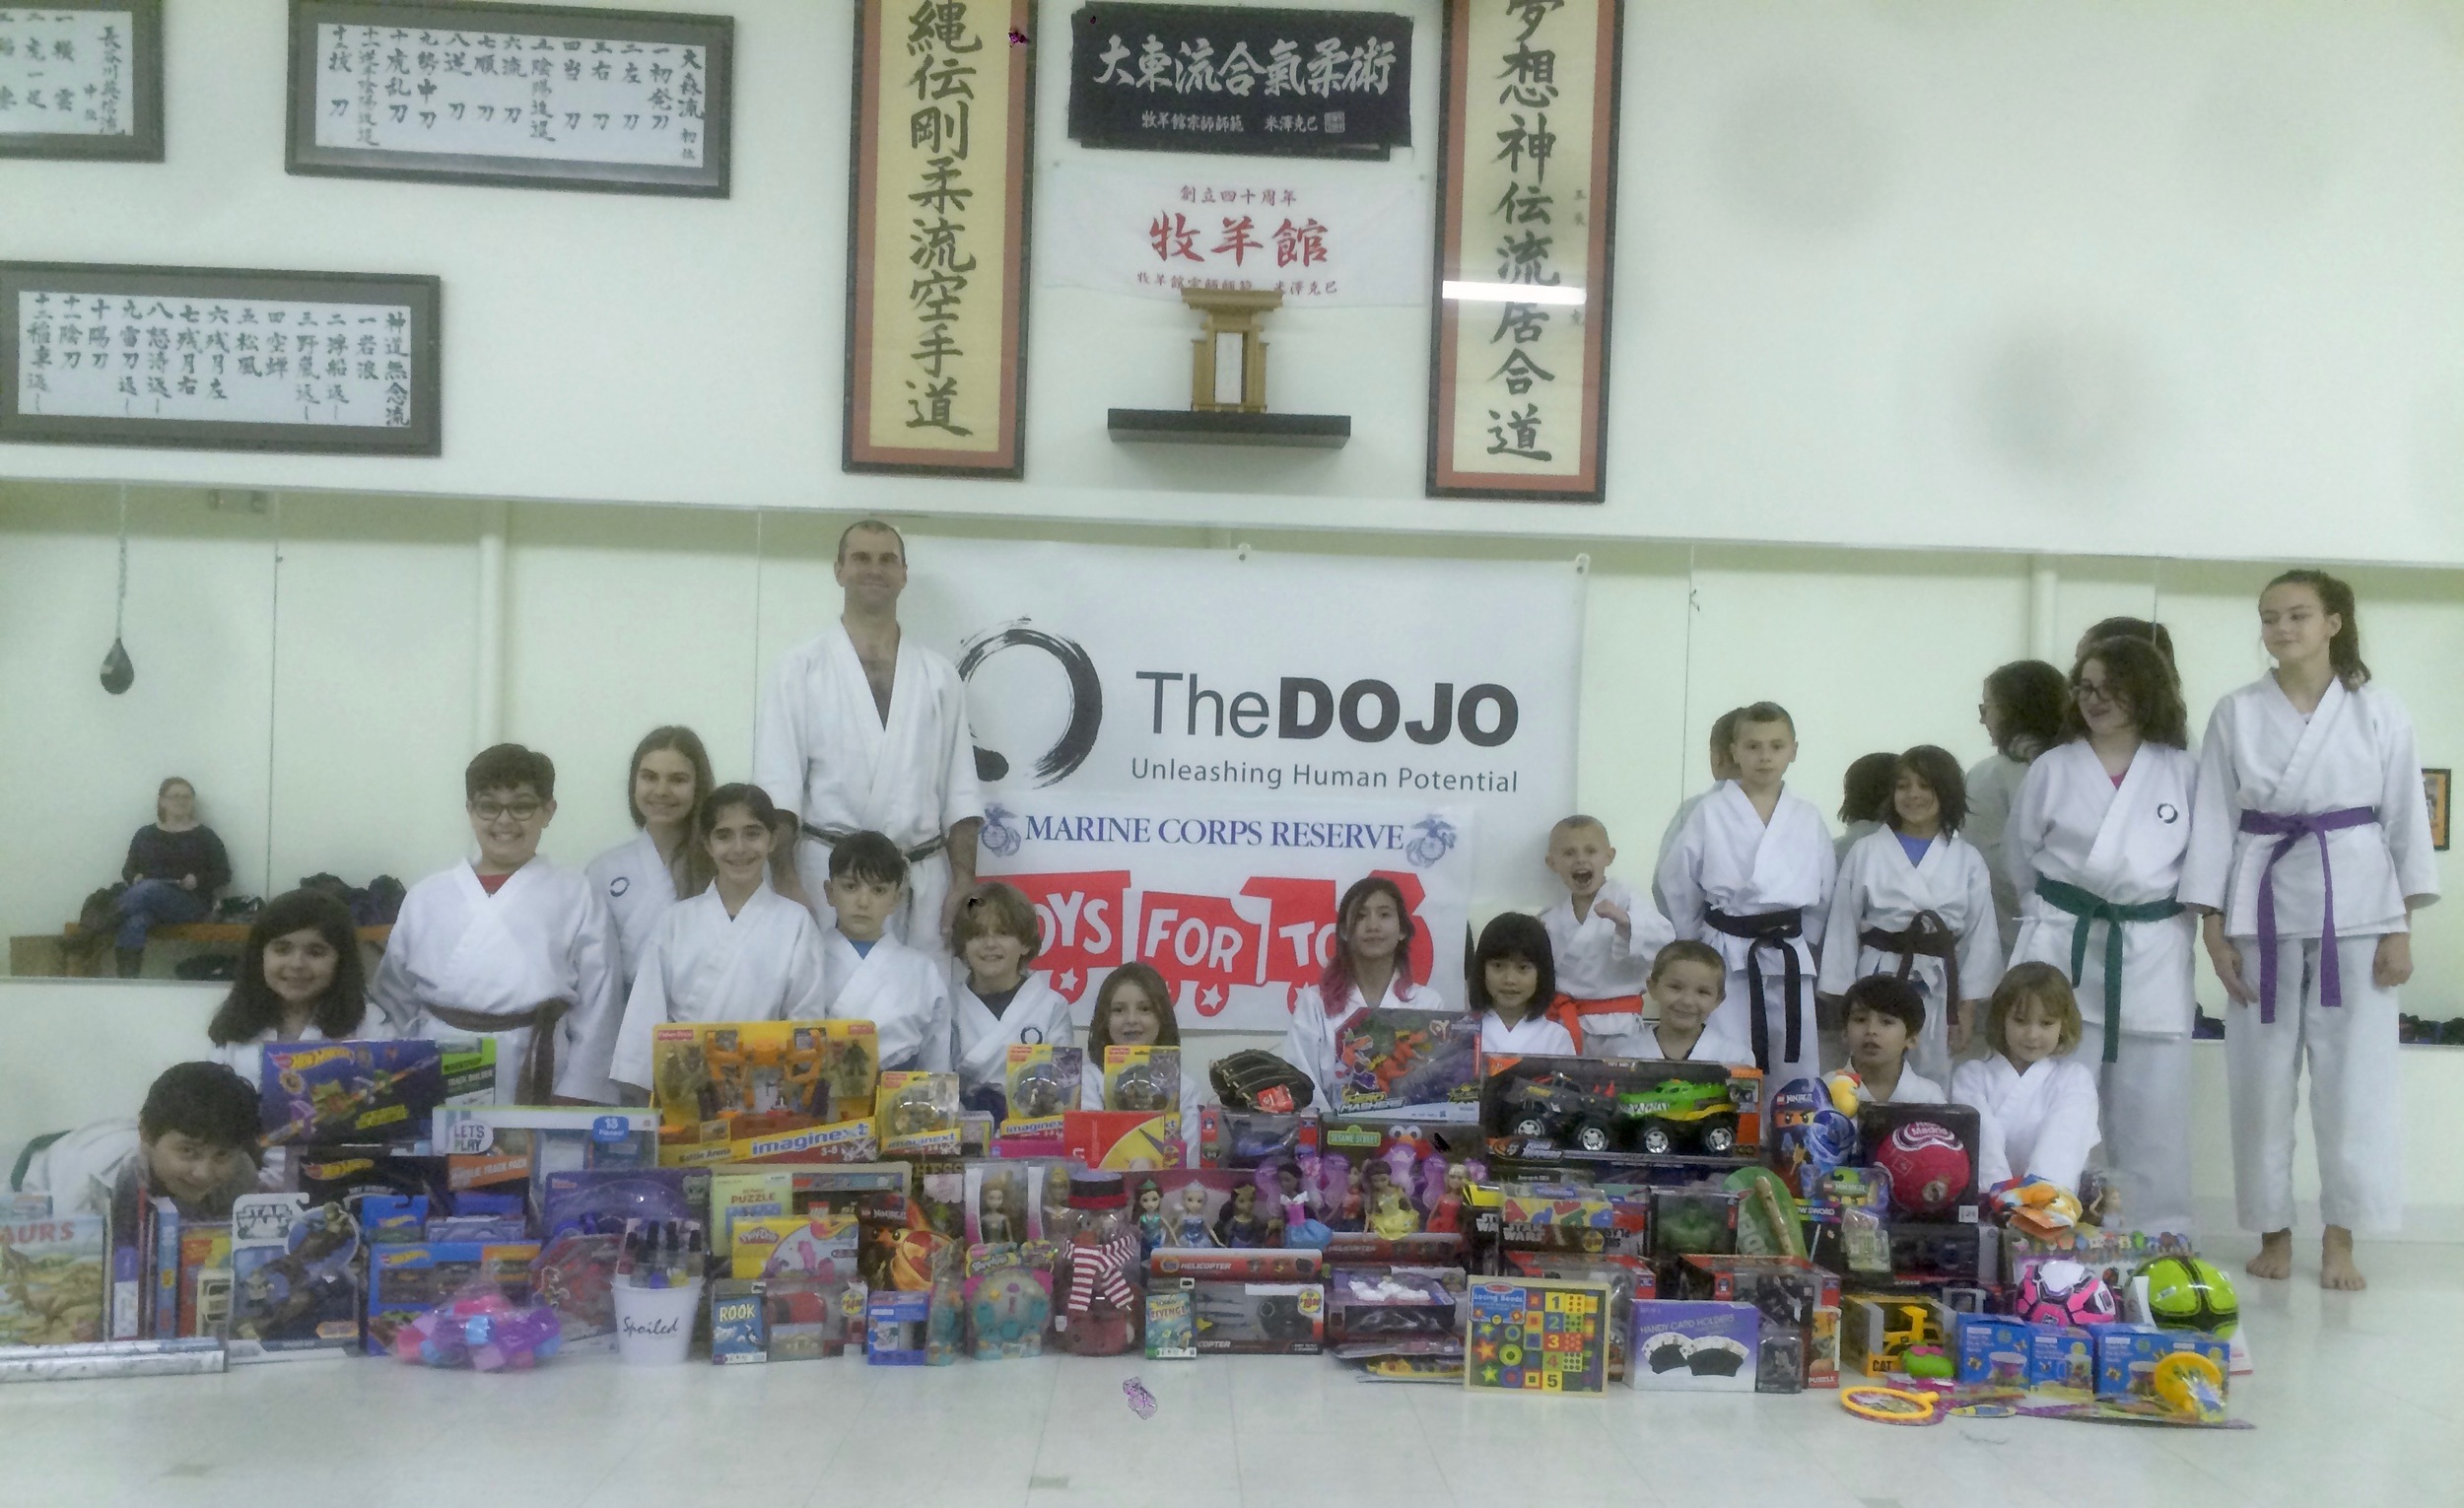 toys-for-tots---thedojo-toy-drive_23461874629_o.jpg